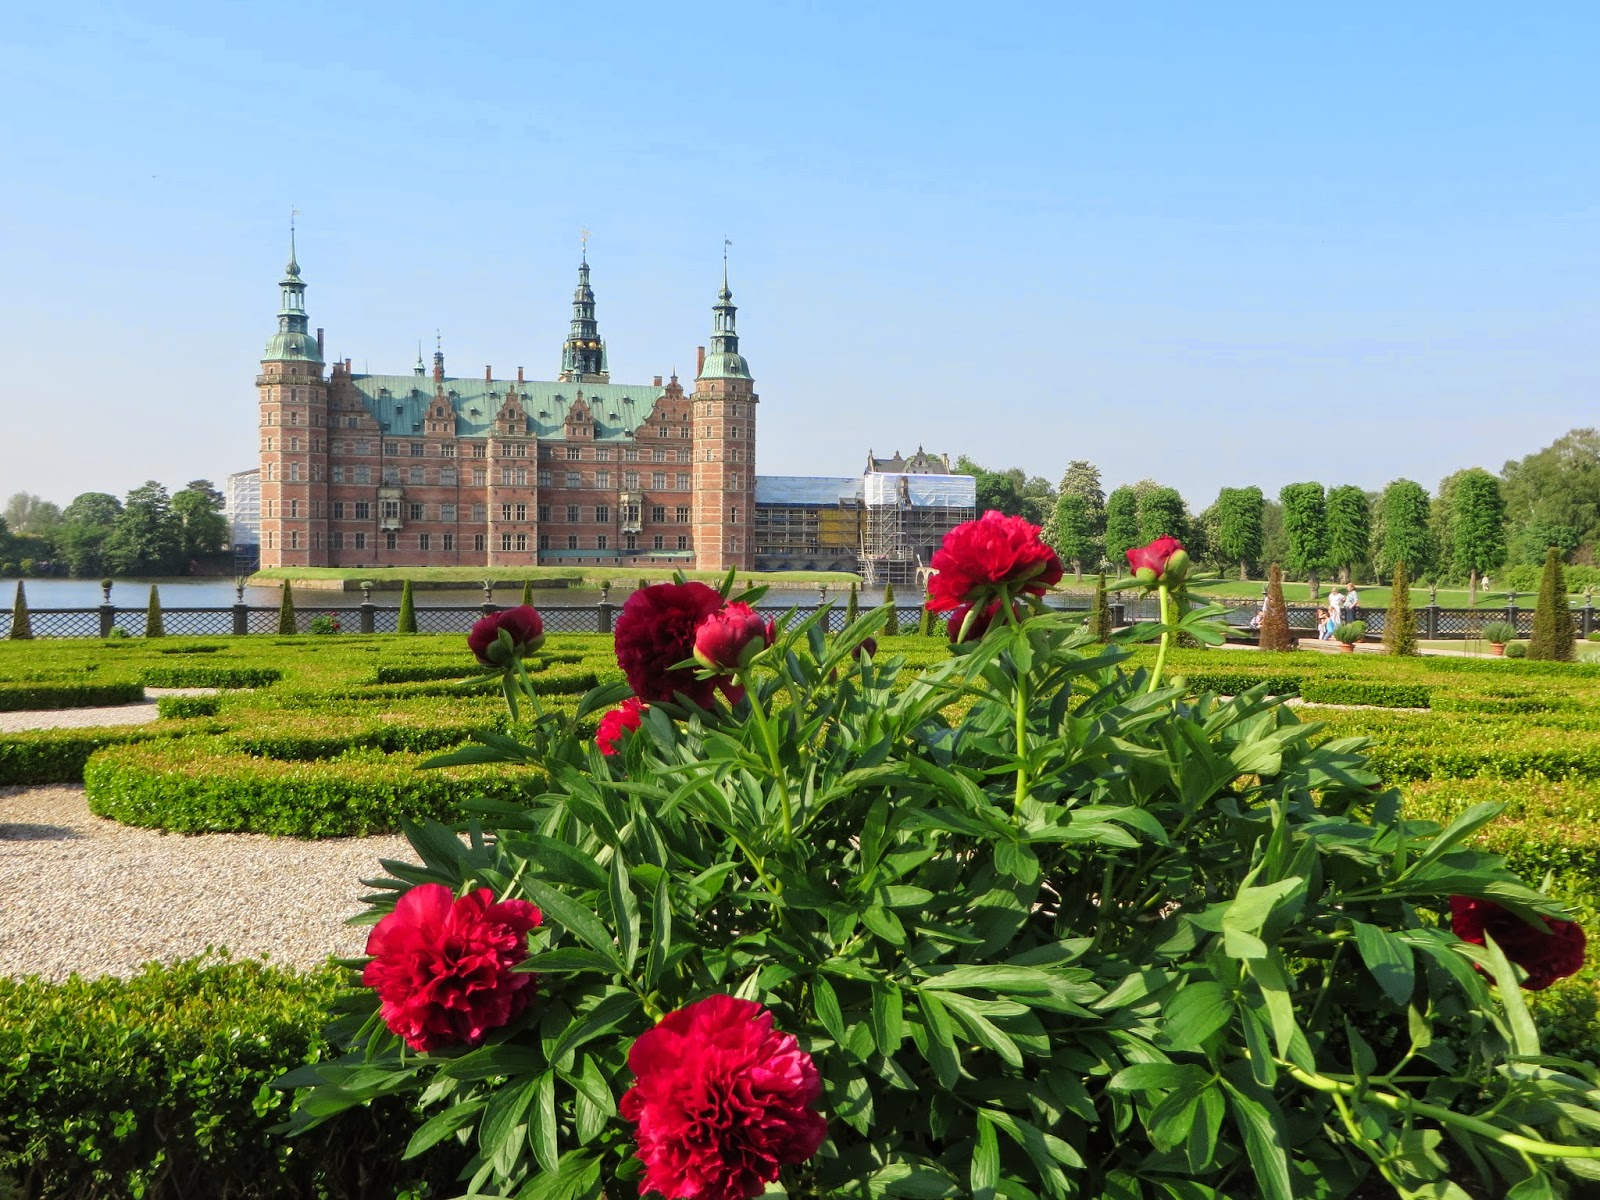 The museum of national history at frederiksborg castle copenhagen - It Is Well Worth A Visit When You Are In Denmark The Audio Guide Is Pretty Good And Gives You A Complete Overview Of Danish History